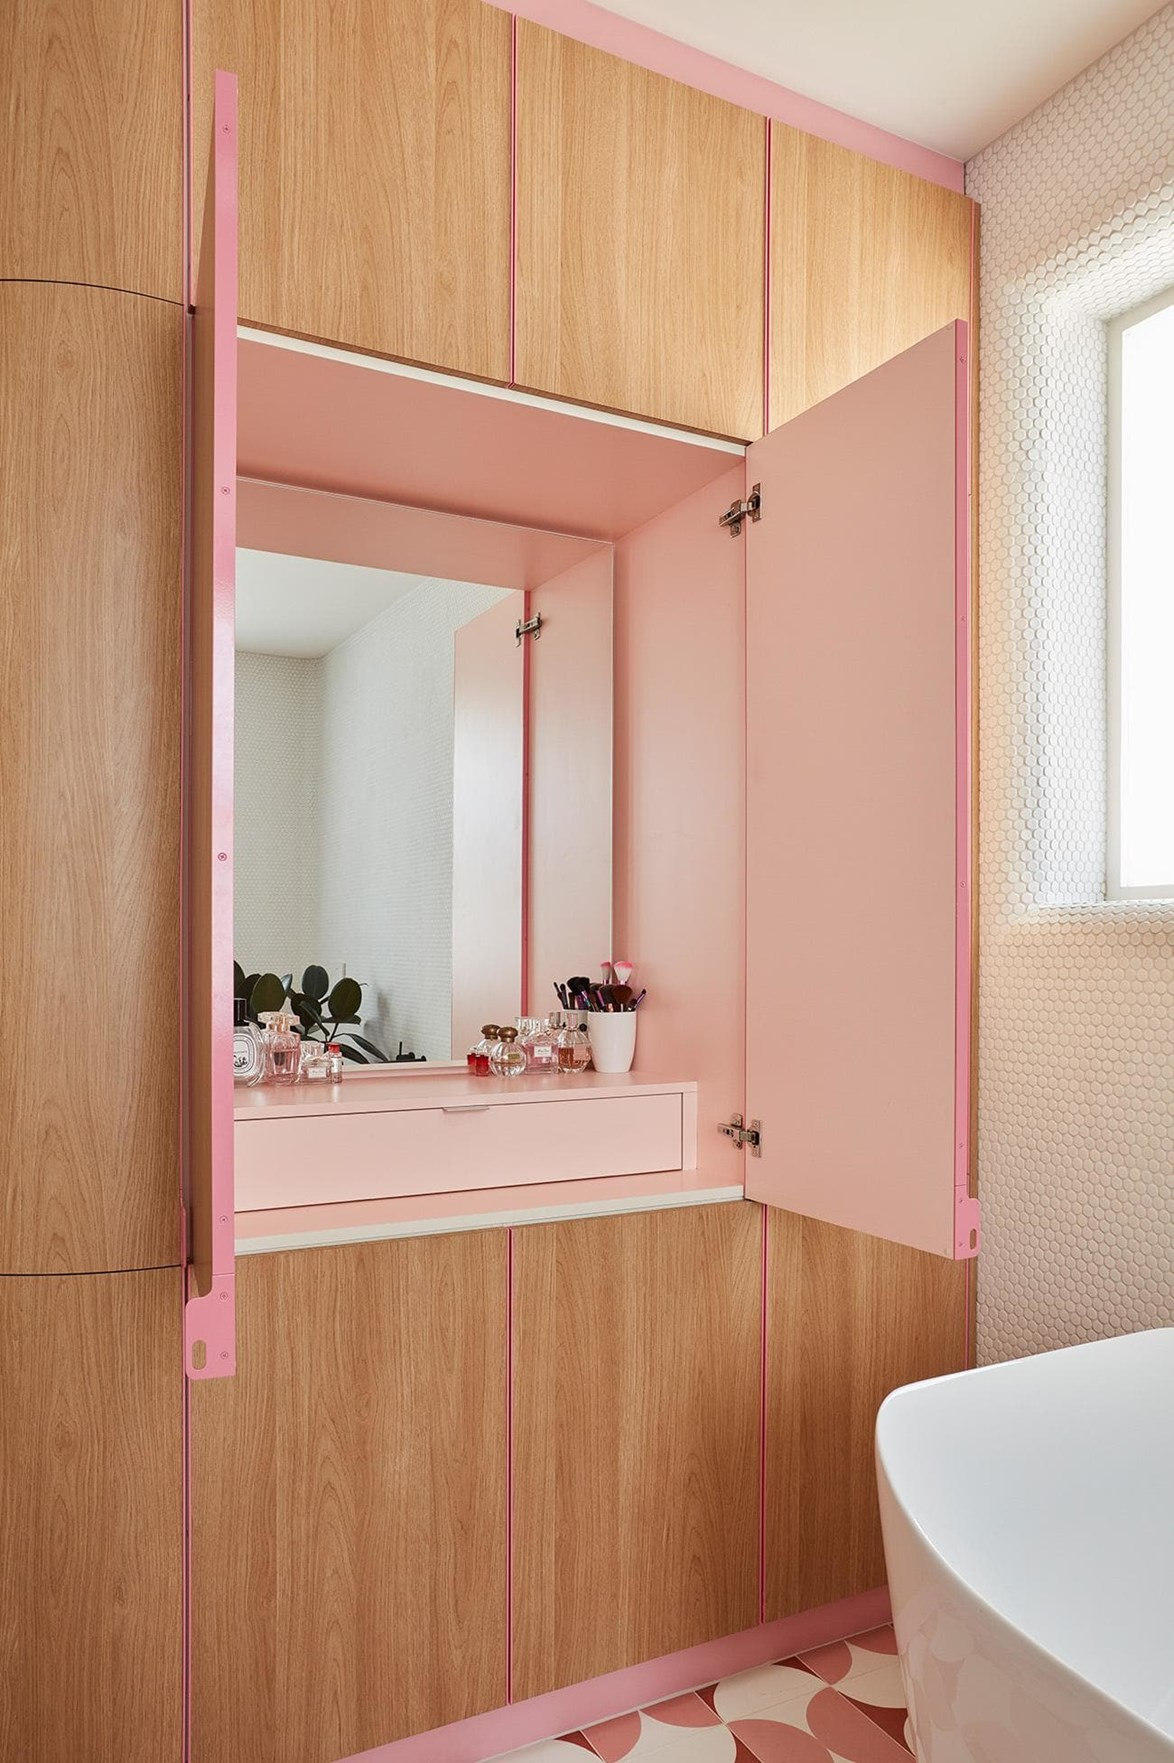 "**Bespoke bathroom storage** - Face-level and under basin storage have been bathroom design buzzwords for years. From toiletries to hairdryers and makeup collections, there's quite a lot that needs to be packed away in a bathroom (especially if you're after that always tidy, minimalist aesthetic). A clever bathroom cabinet in an [updated 19th Century terrace house](https://www.homestolove.com.au/this-renovated-19th-century-terrace-now-has-pastel-pink-floors-and-secret-doors-17195|target=""_blank"") fits the bill *and* is a delight to pop open.  *Photo: Sean Fennessy / Story: Inside Out*"